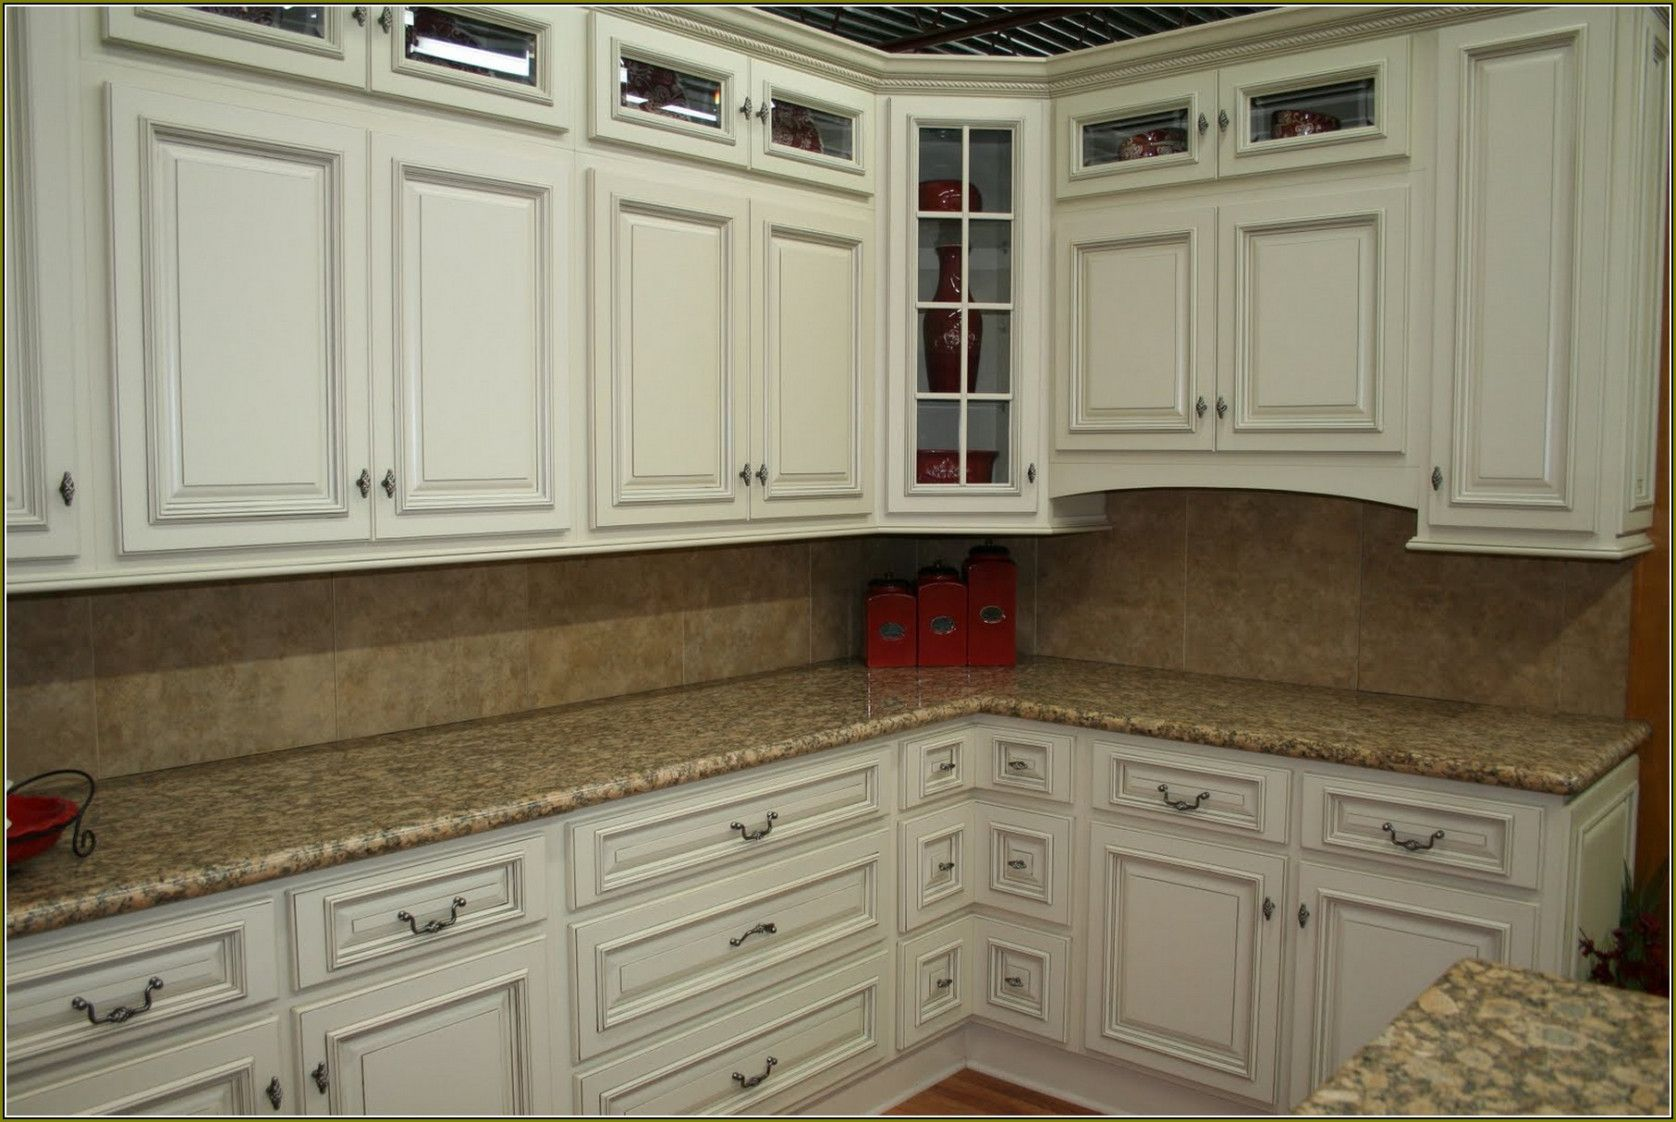 Best Pin By Rahayu12 On Interior Analogi Kitchen Cabinet 640 x 480